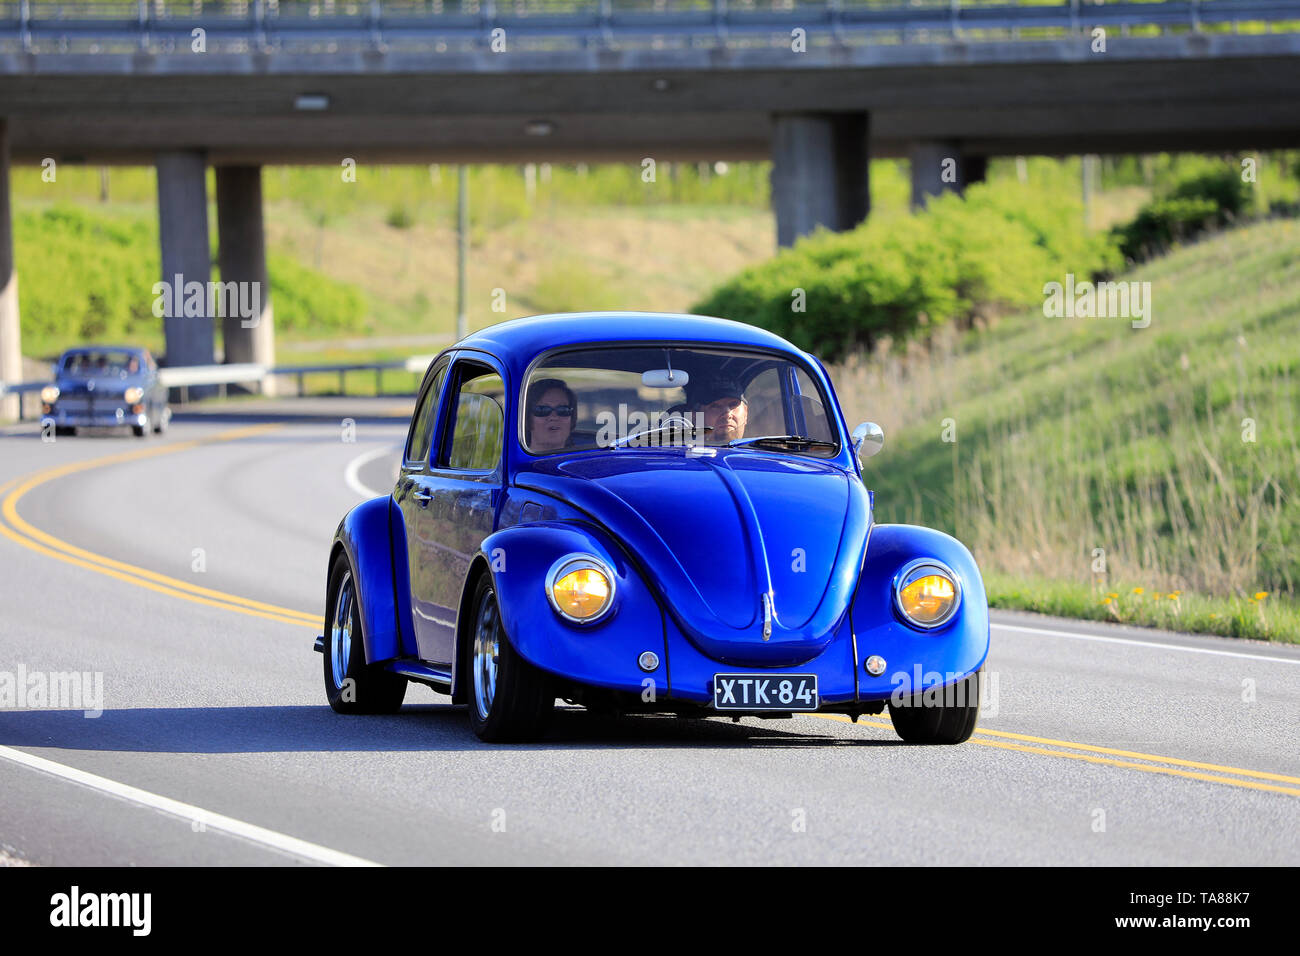 Salo, Finland. May 18, 2019. Classic royal blue 1970s Volkswagen Beetle, or Type 1 on road on the popular annual event Salon Maisema Cruising 2019. - Stock Image